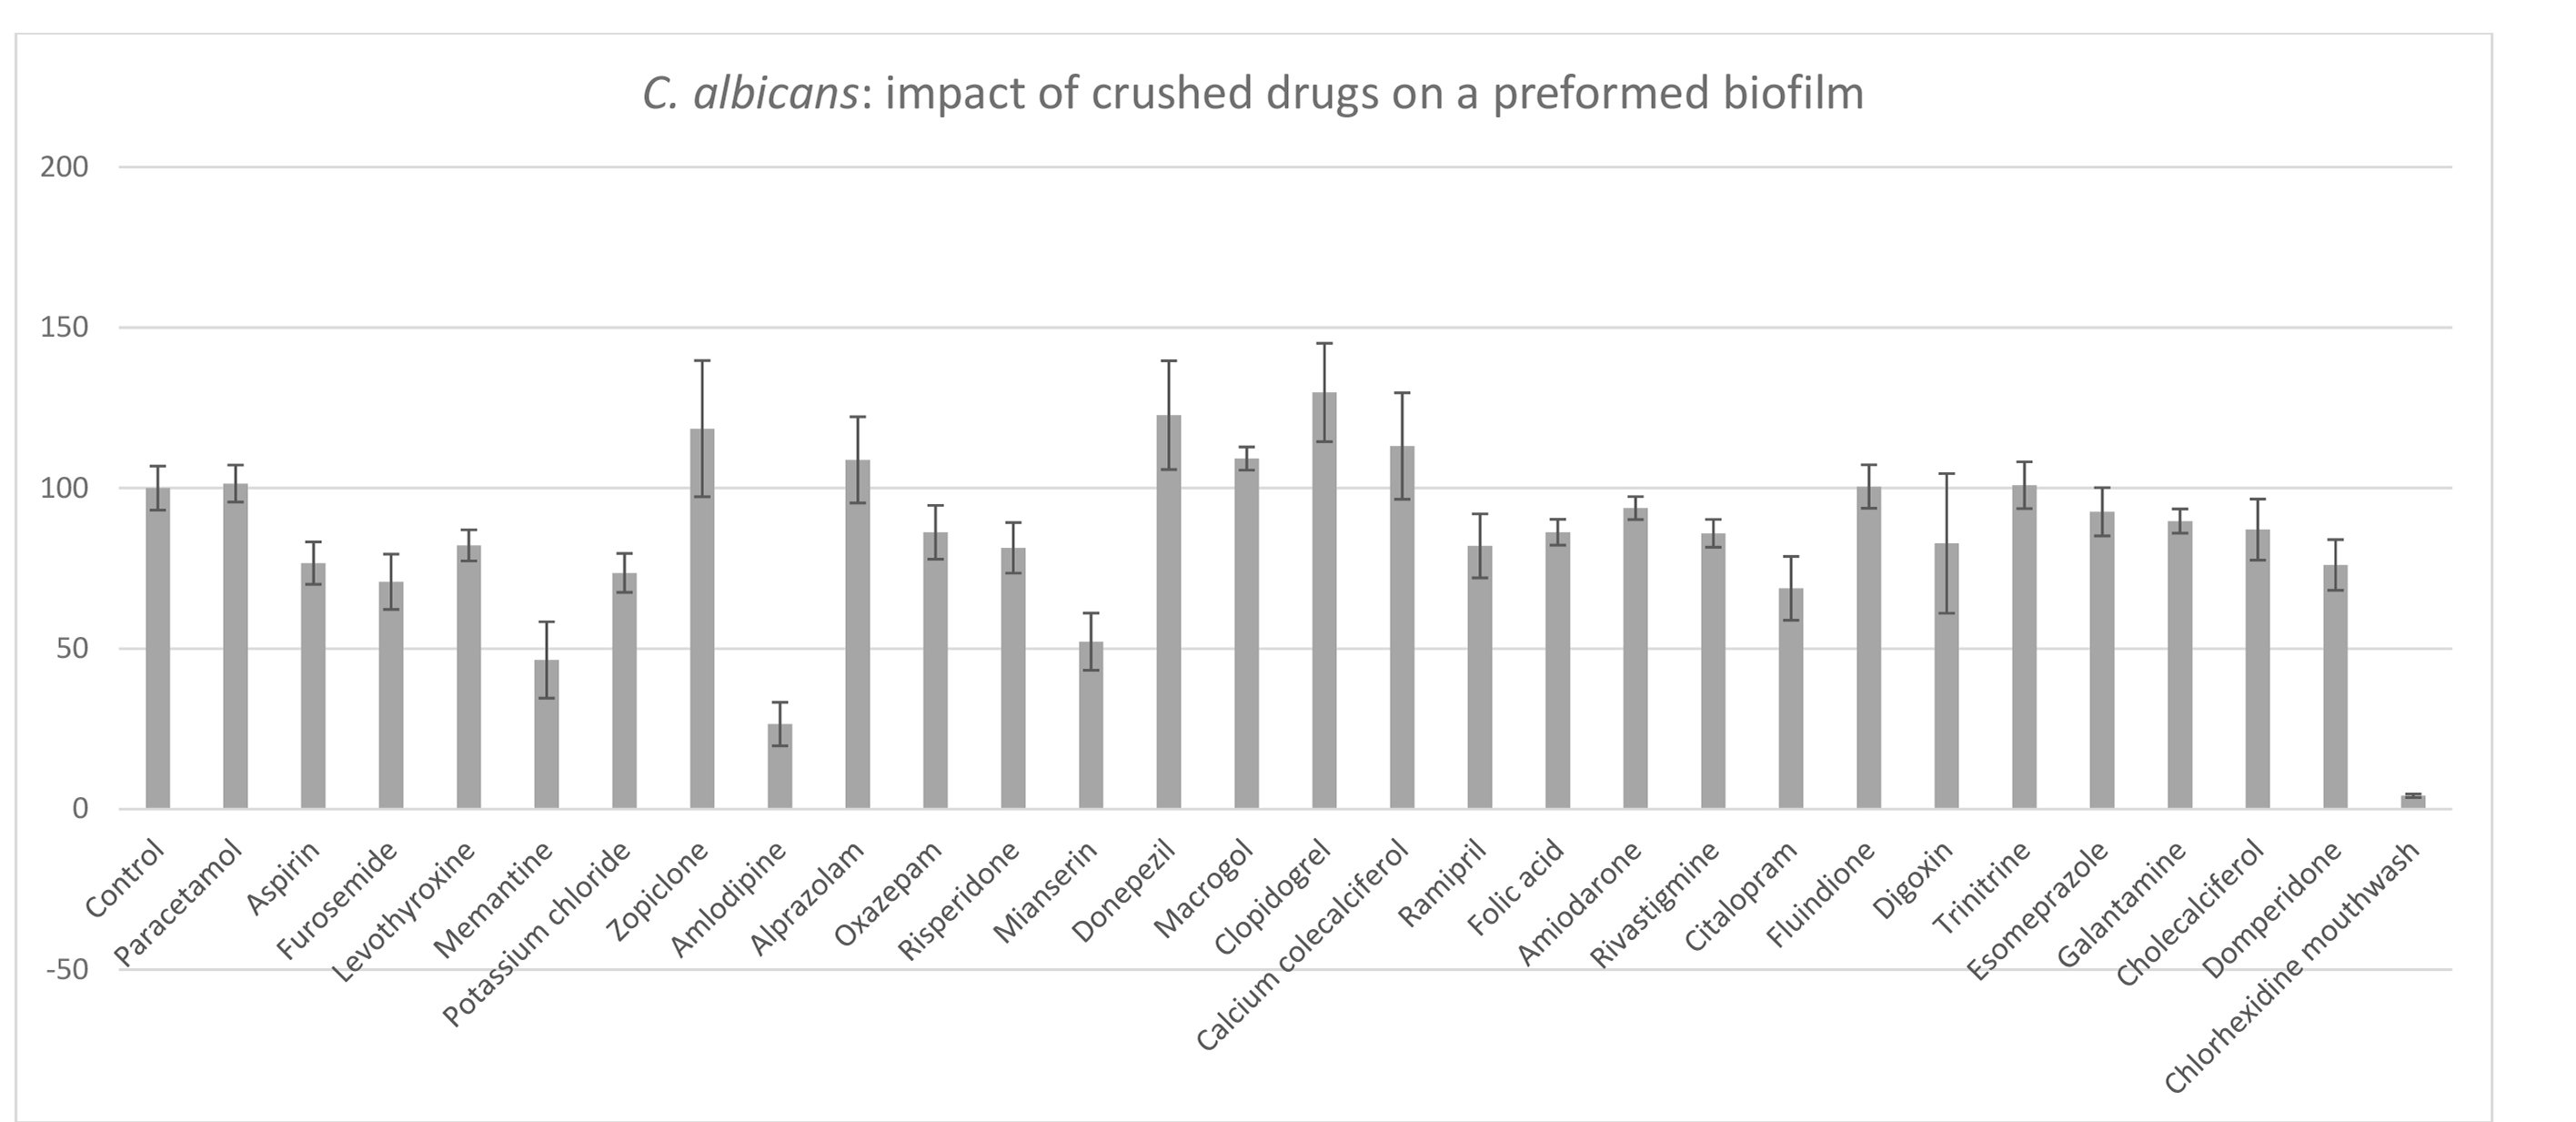 Anti-biofilm properties of drugs commonly prescribed in nursing homes, after 5-min contact: viability reduction in a preformed Candida albicans biofilm grown for 24 hrs. Results are expressed as % viability compared to control. Control: 100% of C. albicansviability (XTT orange dye) in a biofilm grown for 24 hrs without medication. Values >100% are attributed to an interaction between certain drugs and the XTT orange dye used to measure optical density.